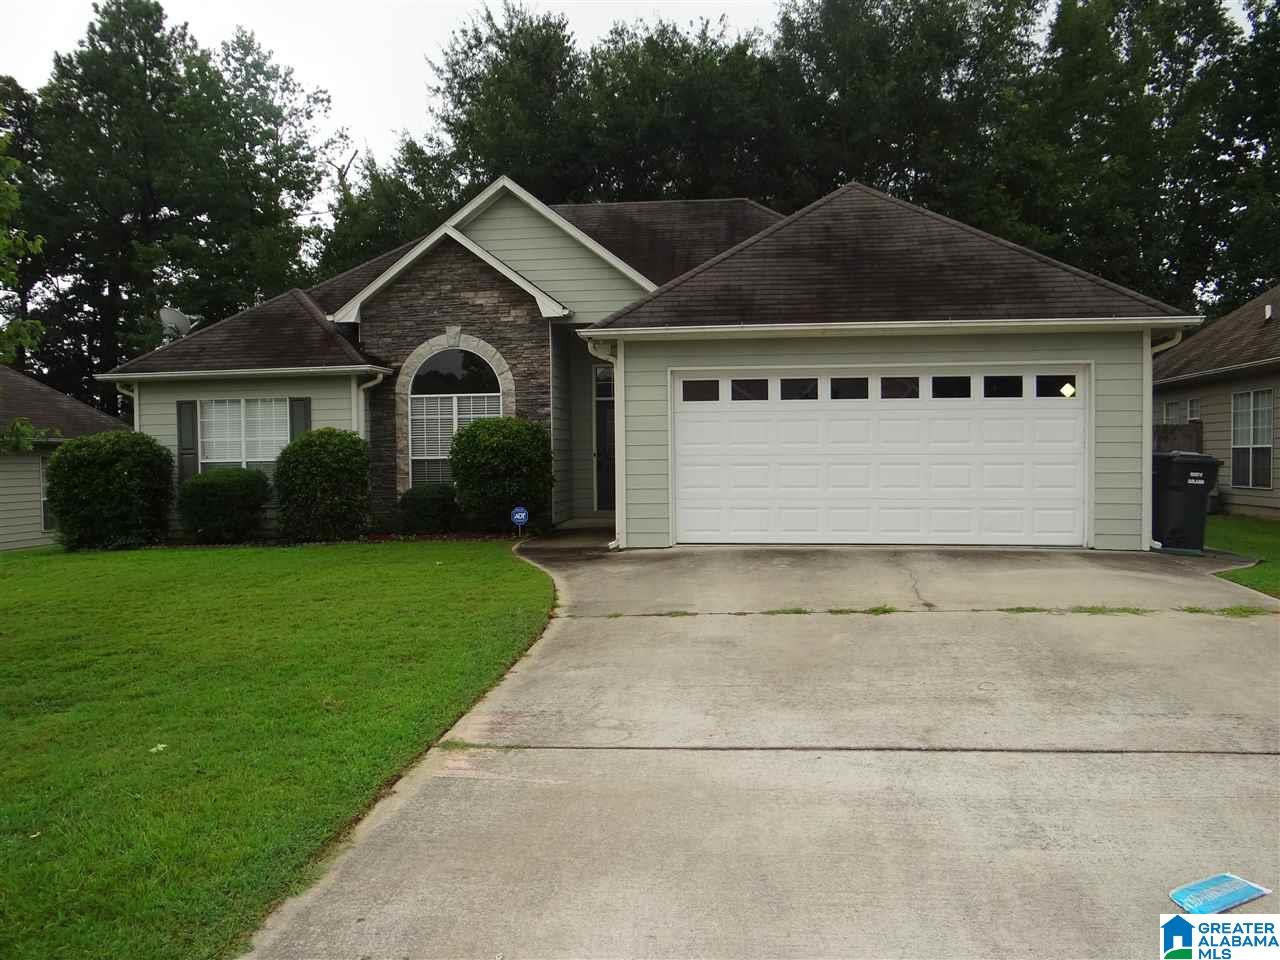 365 SUMMERCHASE DR, CALERA, AL 35040